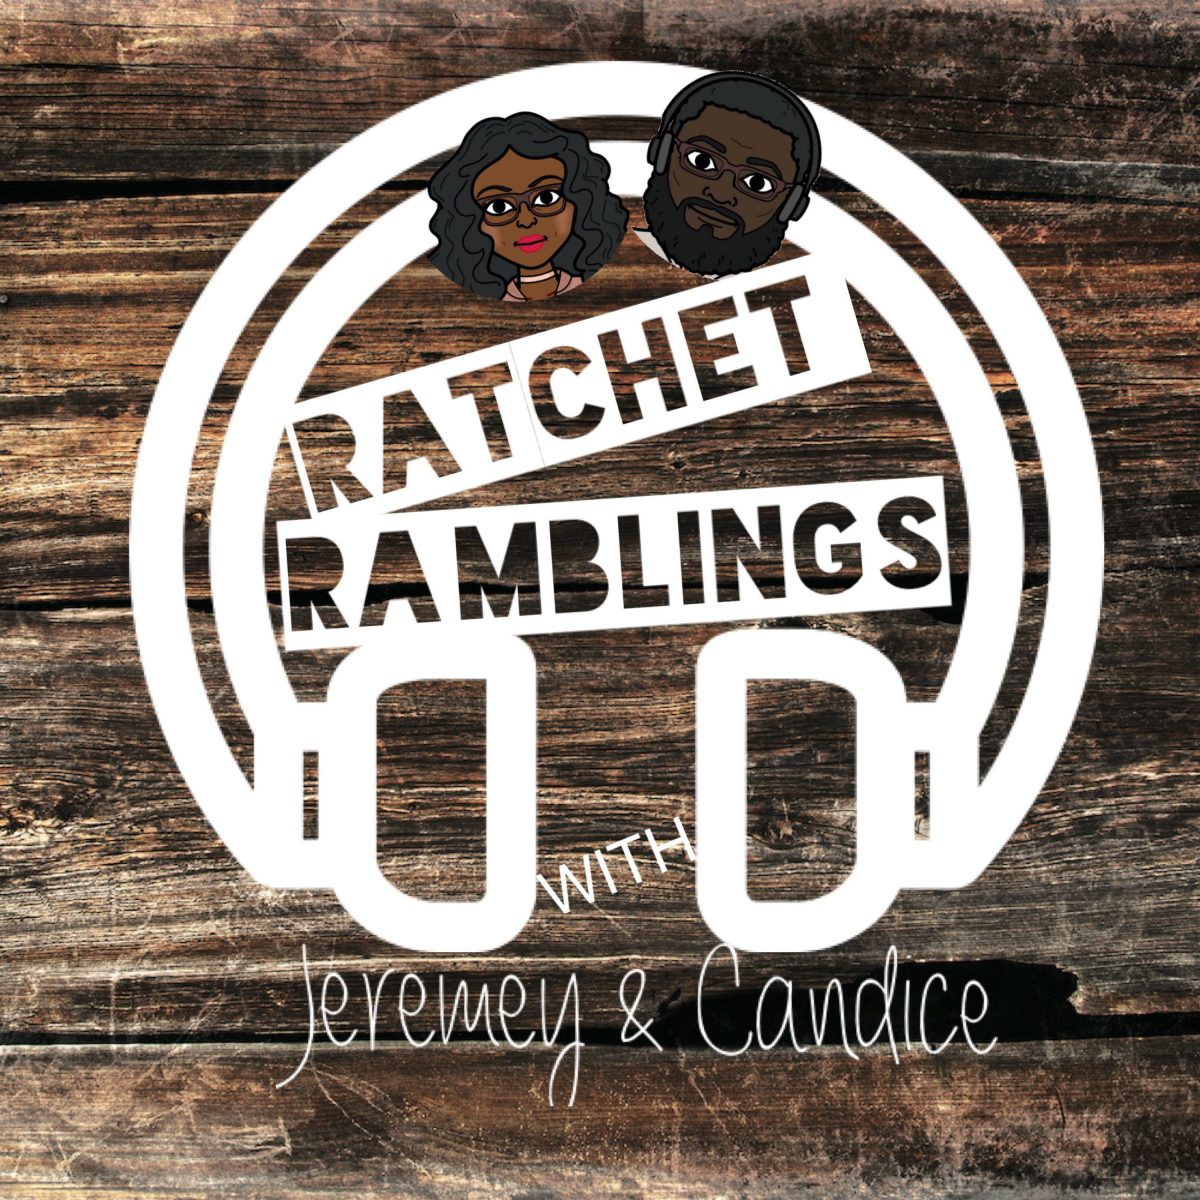 Ratchet Ramblings Episode 16: Safaree of Love